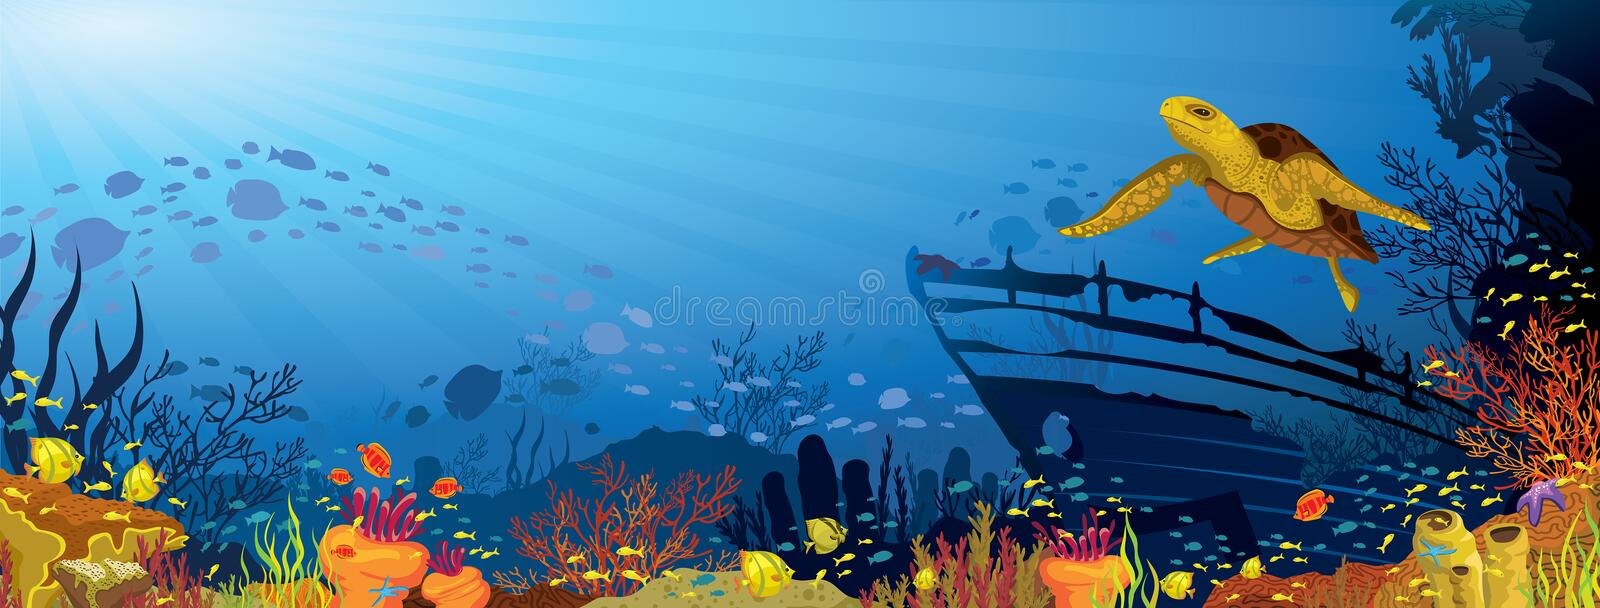 Download Colored Coral Reef With Yellow Turtle Stock Illustration - Image: 26775685